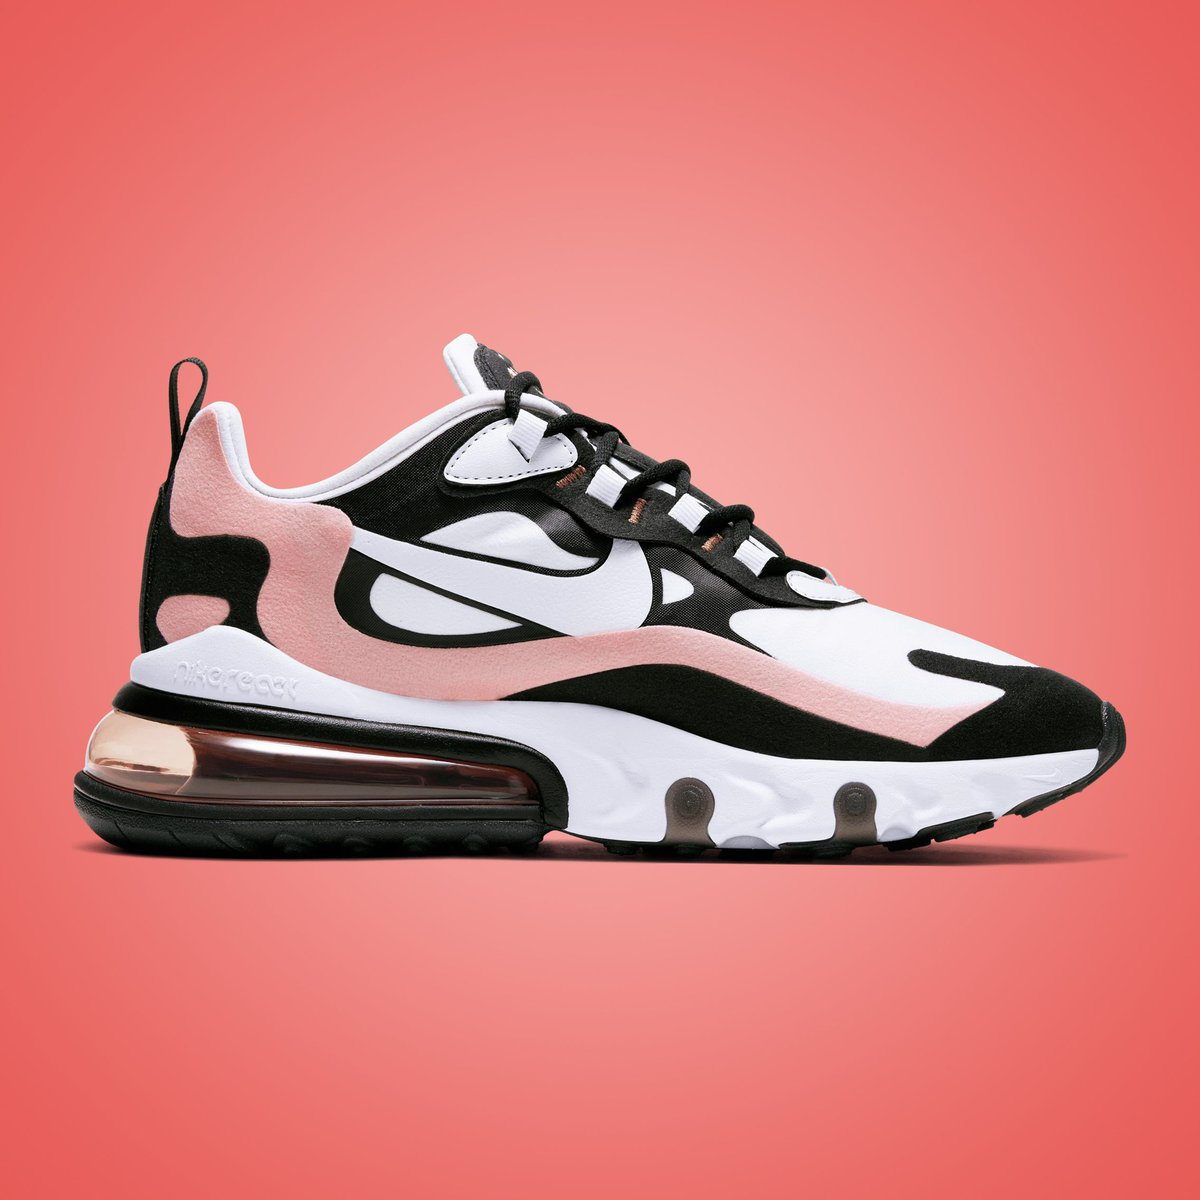 Nike Womens Air Max 270 React AT6174 005 | BSTN Store